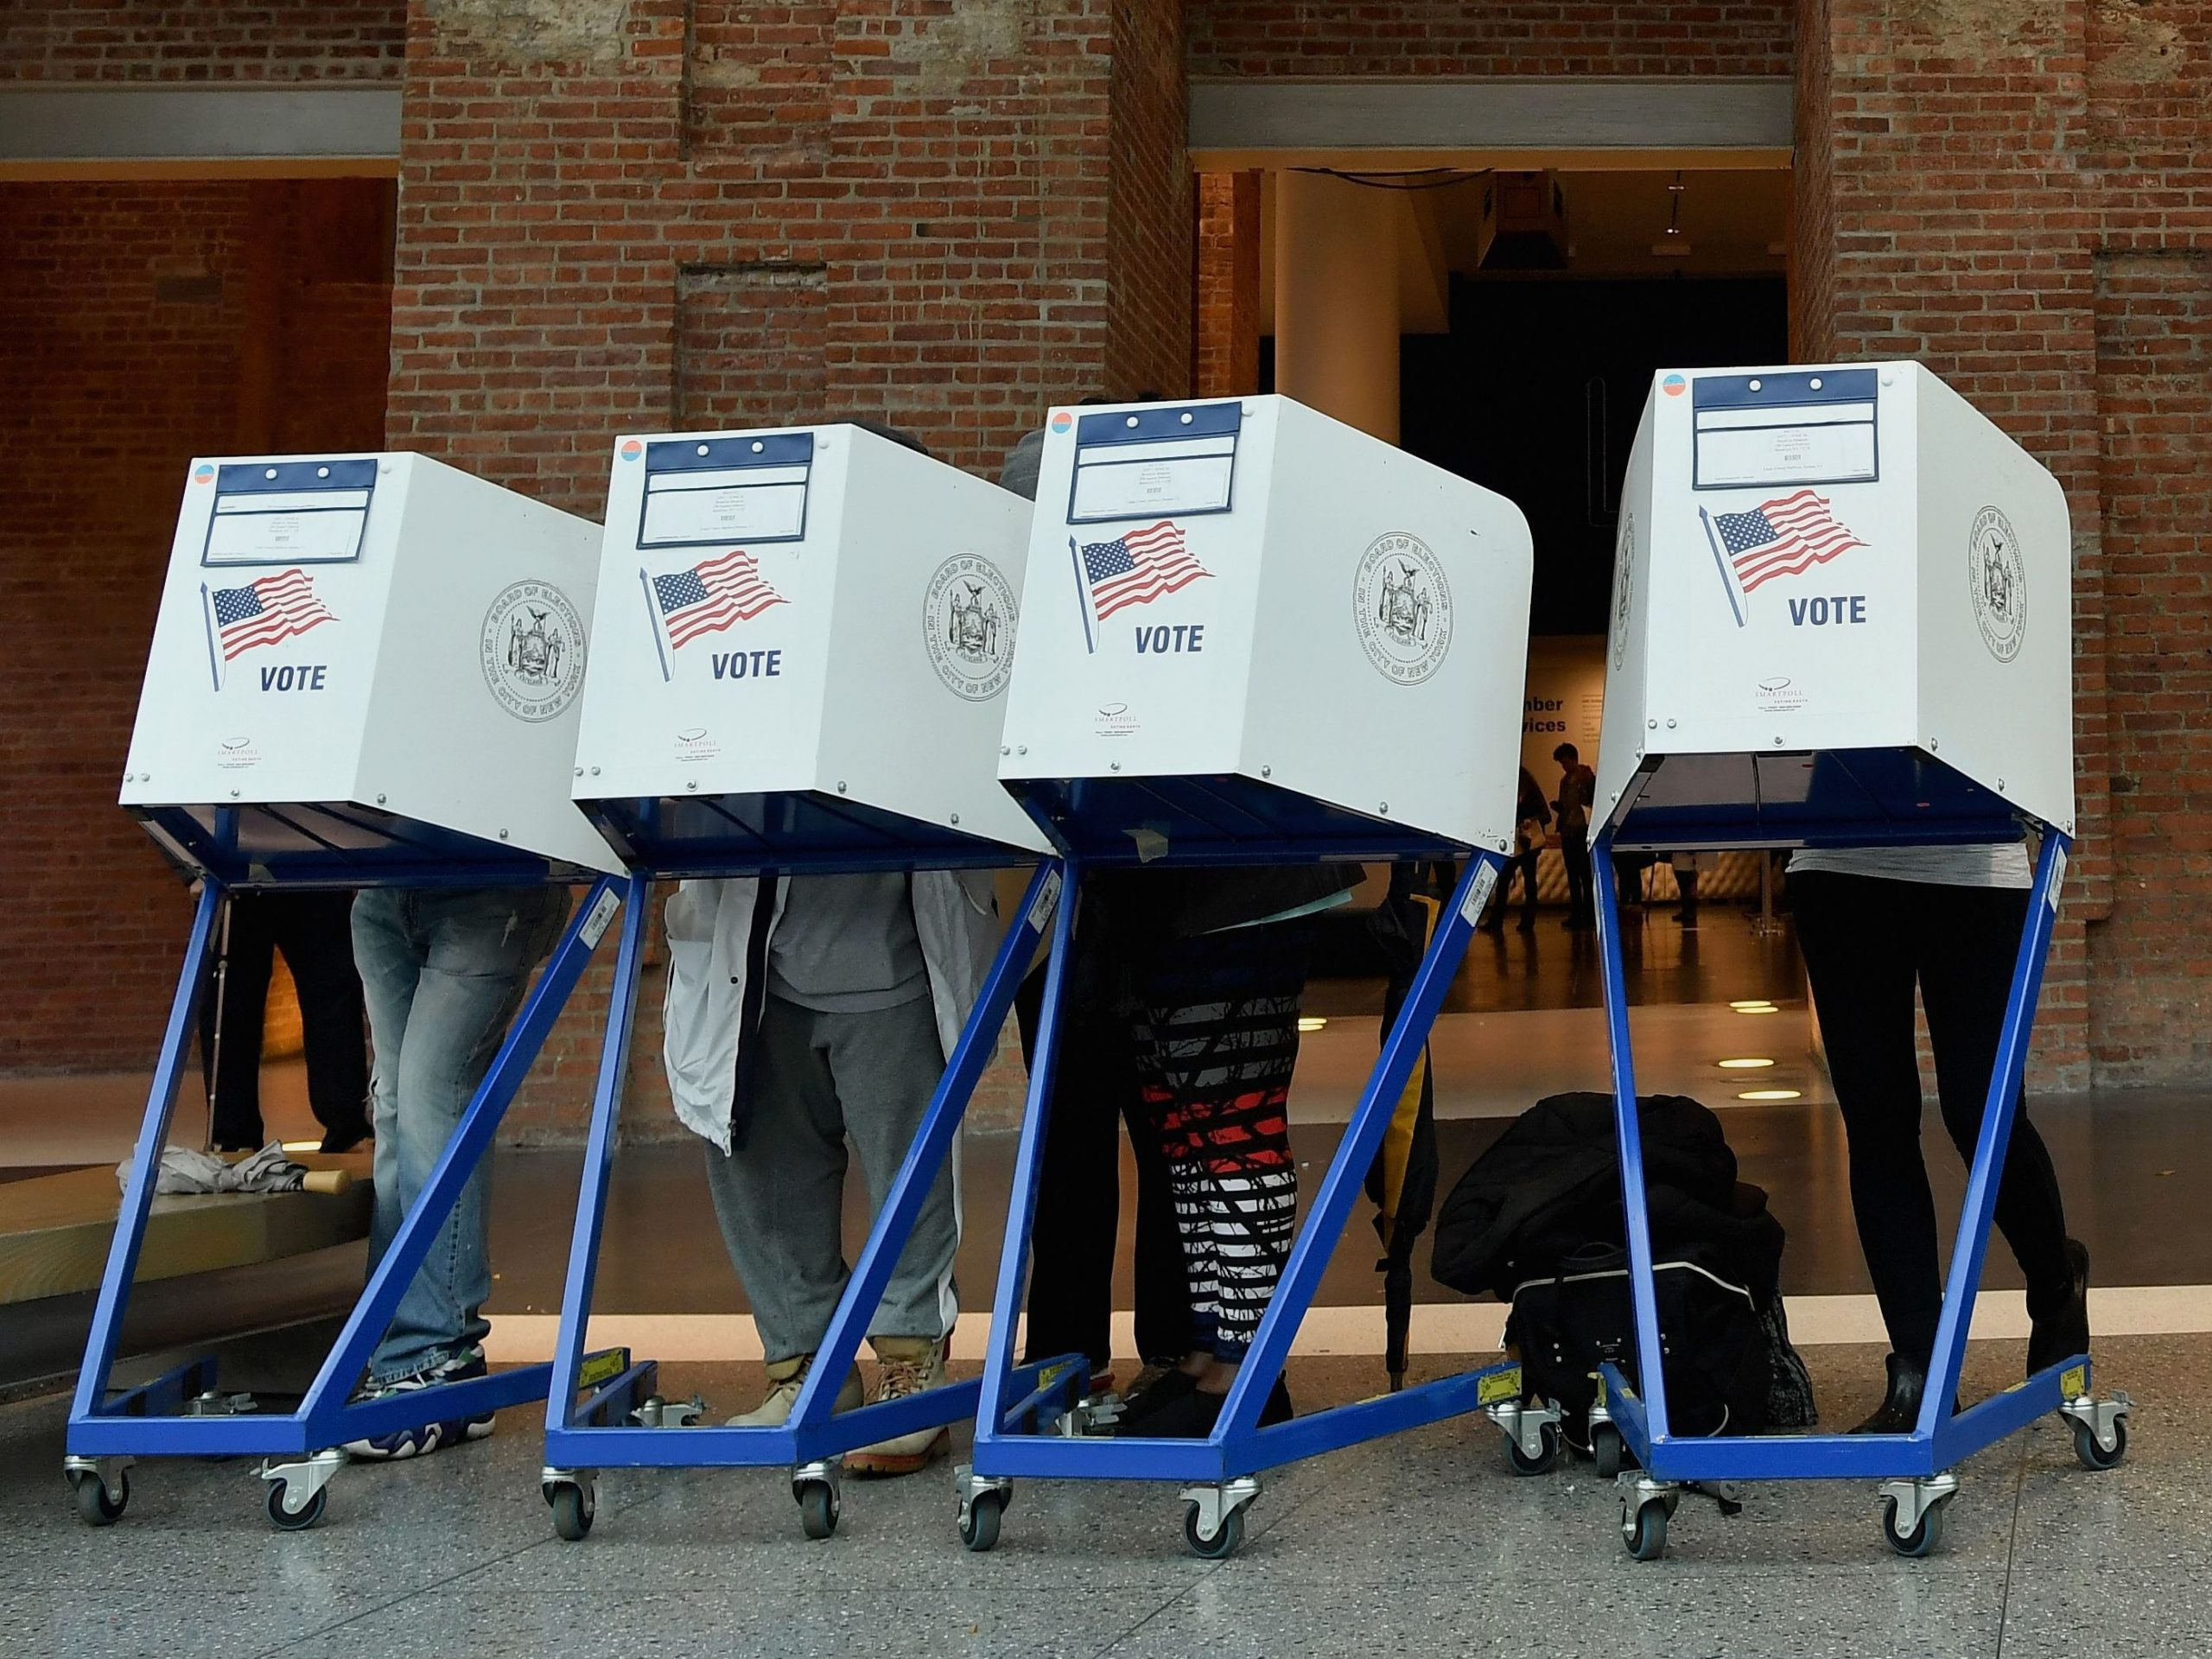 Voters cast their ballots in the midterm election in Brooklyn on November 6, 2018.